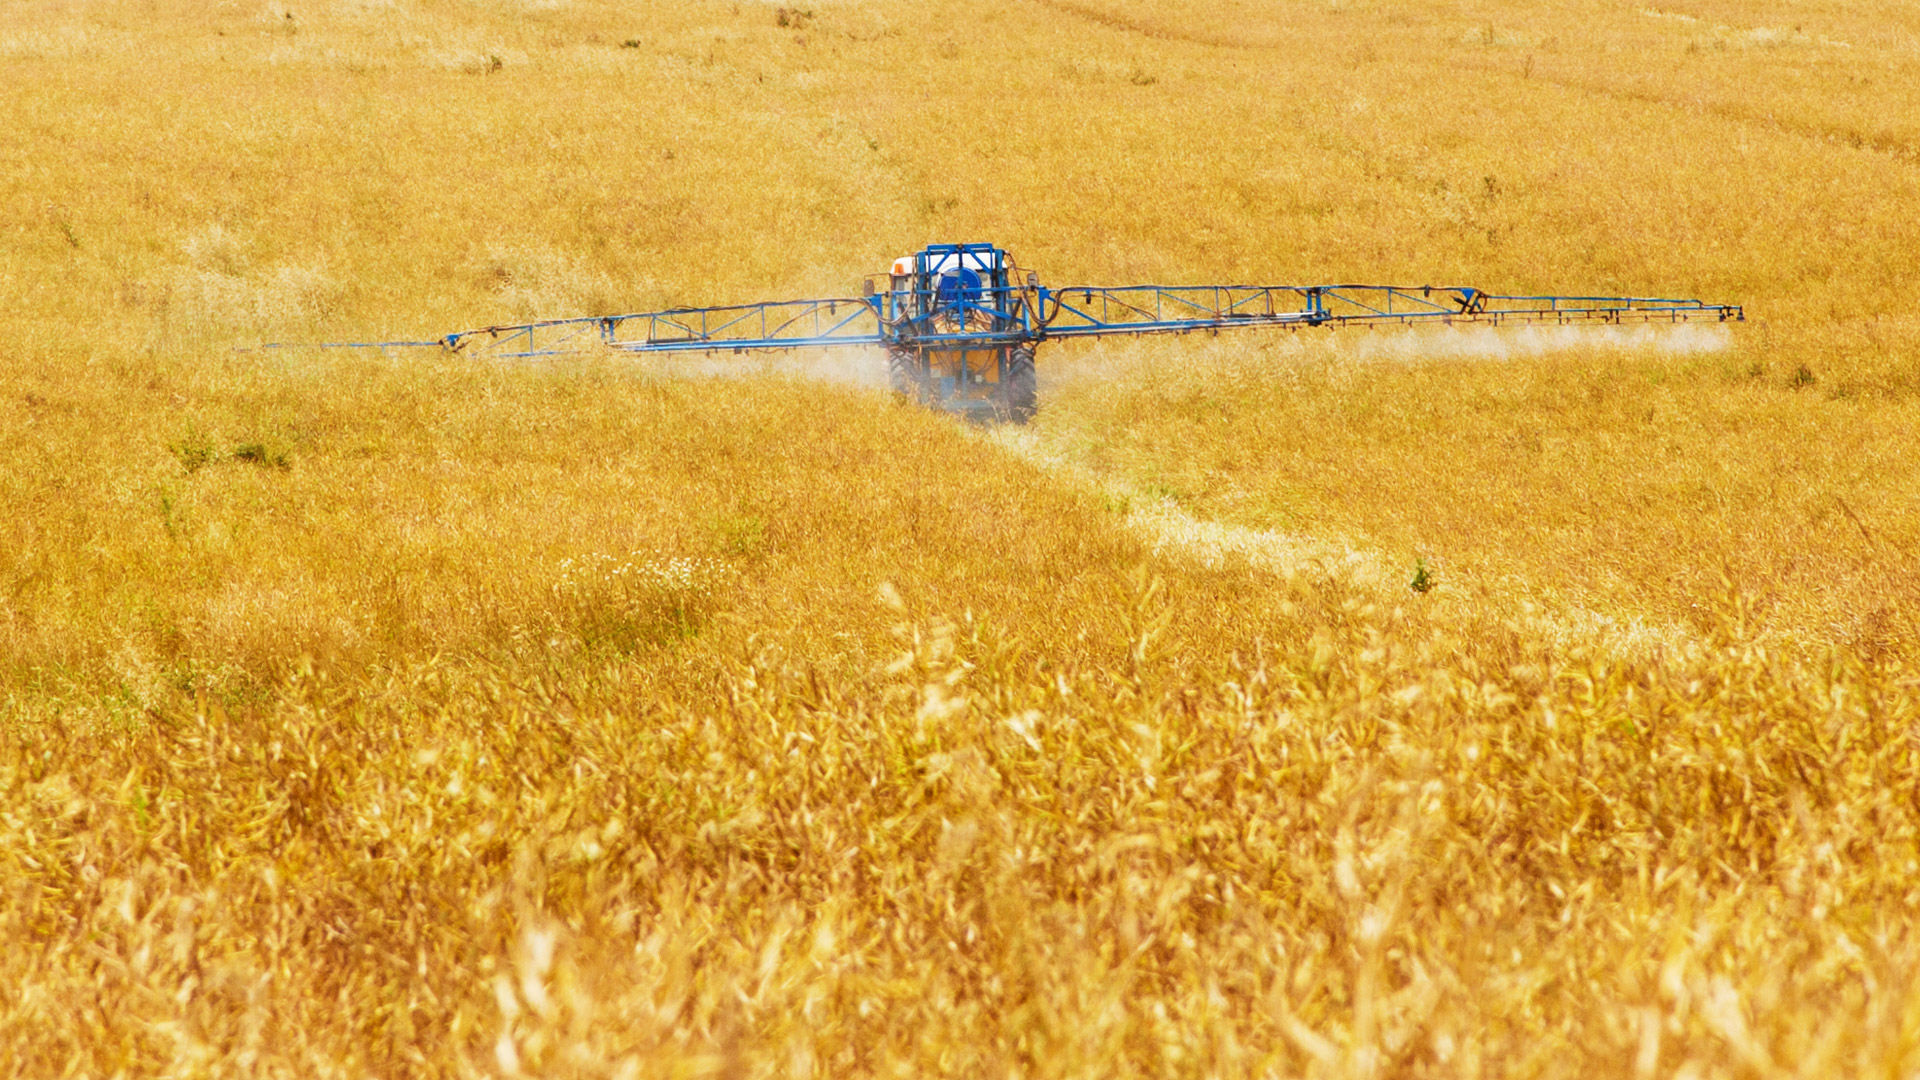 tractor field spray